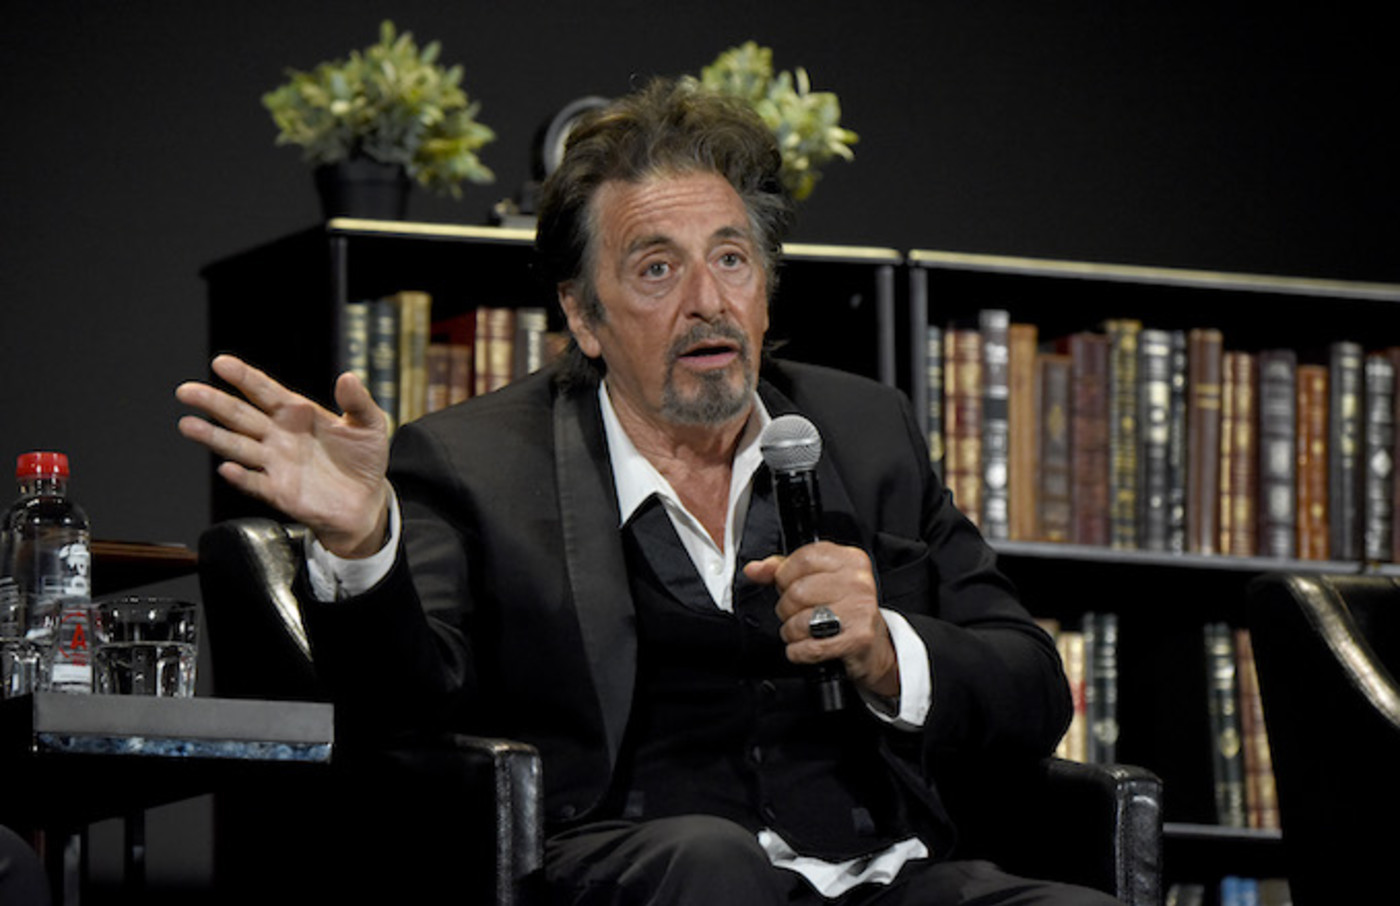 Al Pacino speaks onstage during the panel for 'The Godfather' 45th Anniversary Screening